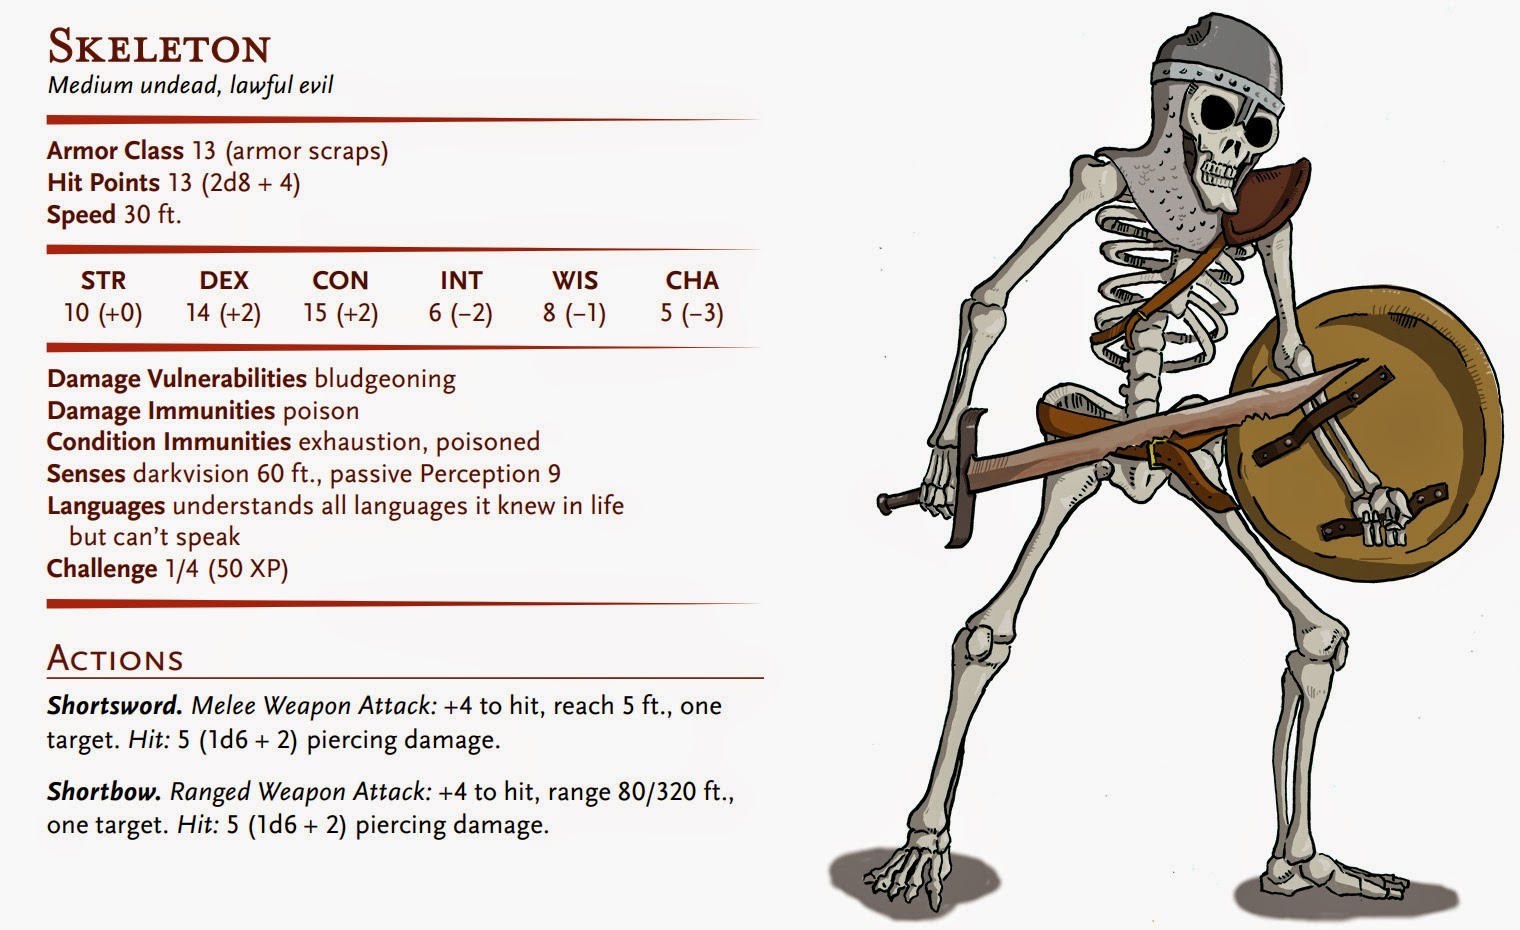 Dungeons & Dragons clipart skeleton Skeletal Dungeons and warriors Ray